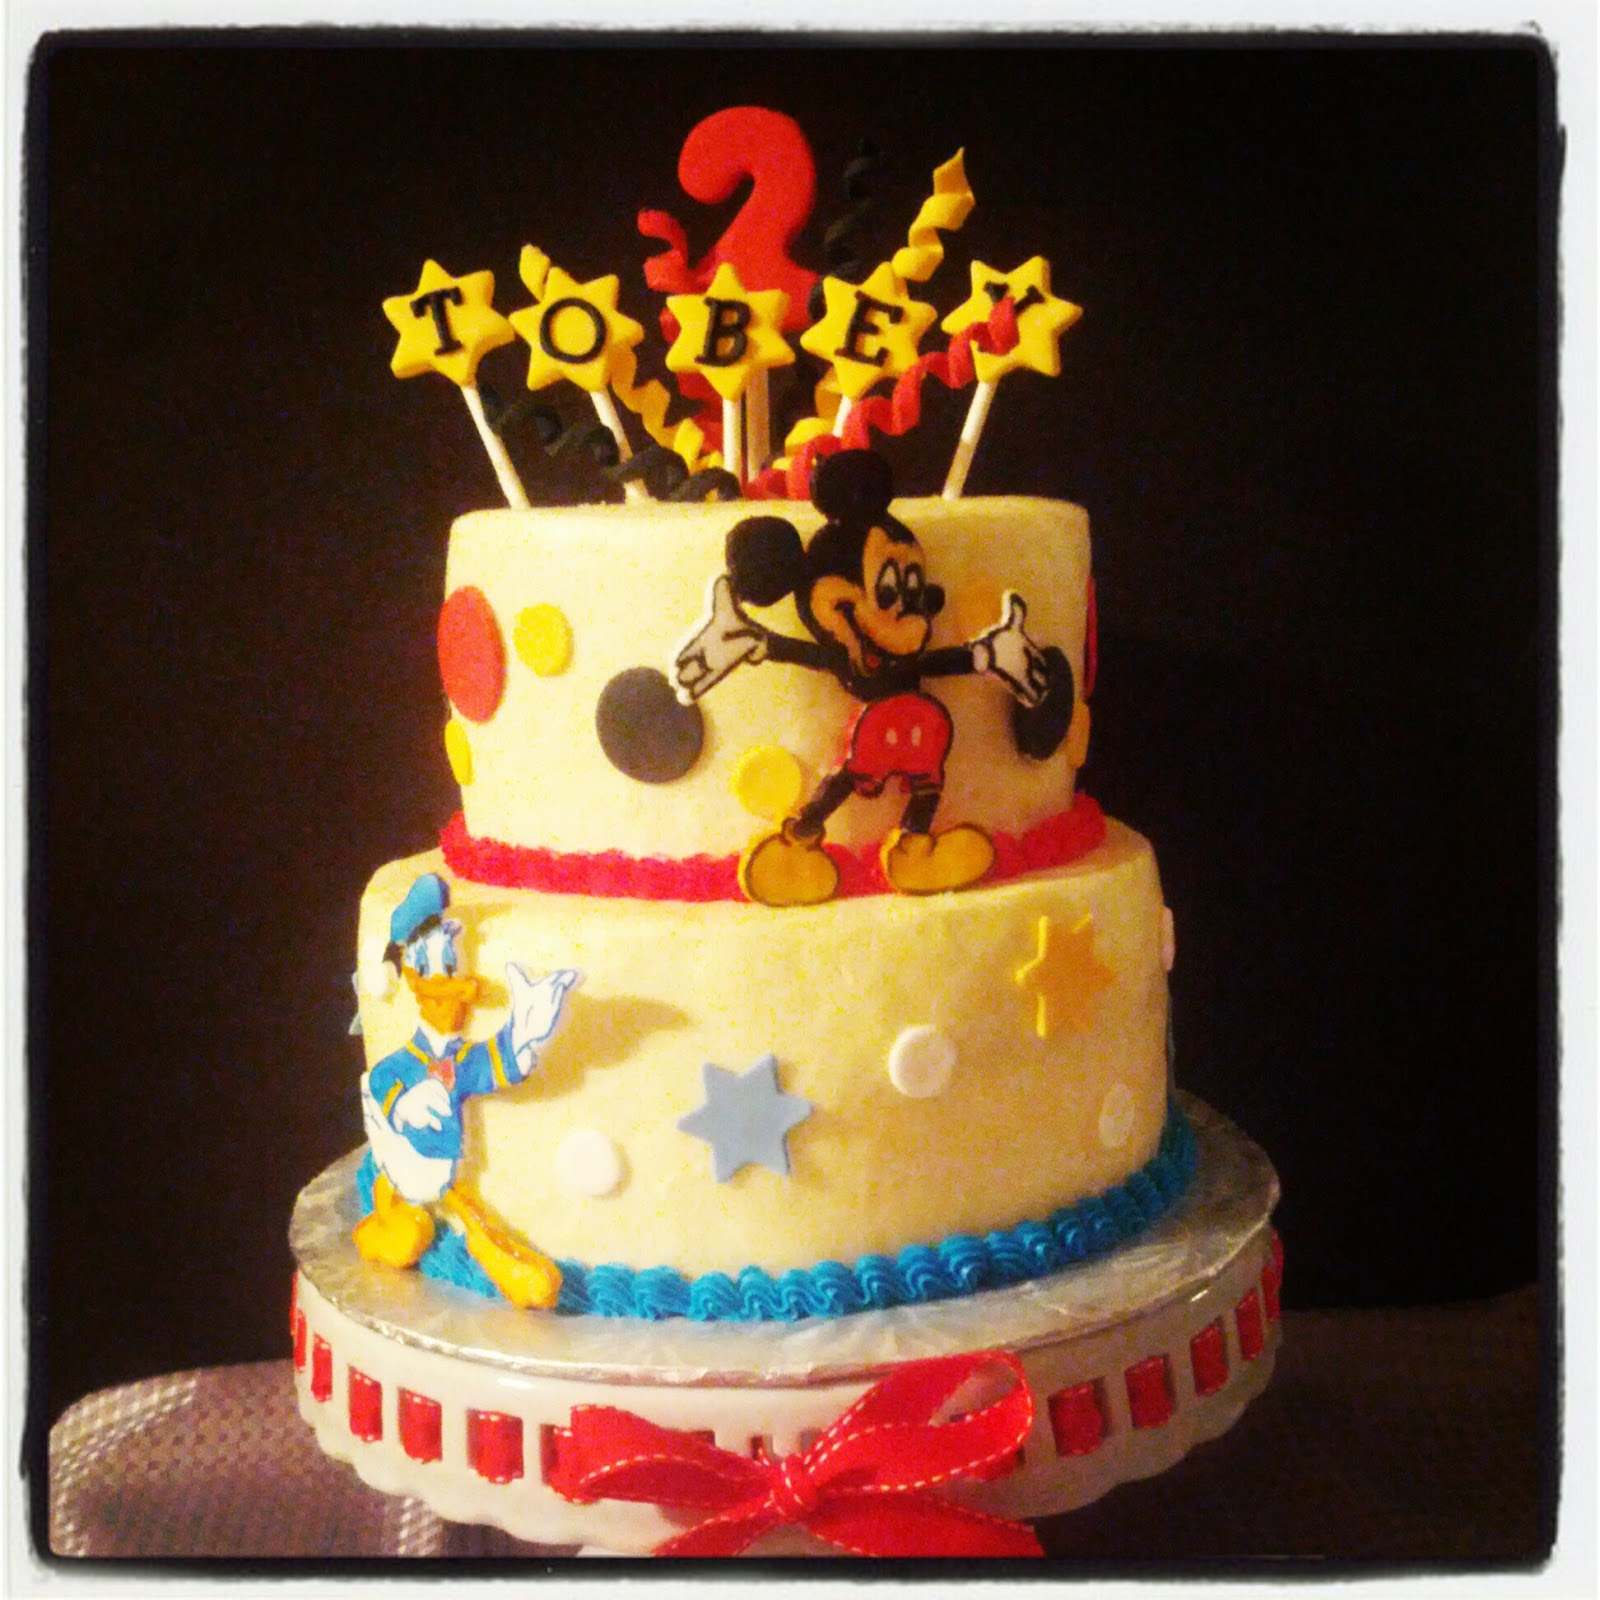 I Made This Cake For My Nieces 2nd Birthday Last Weekend Her Favorite Show Is Mickey Mouse Clubhouse Had Asked If She Wanted The On